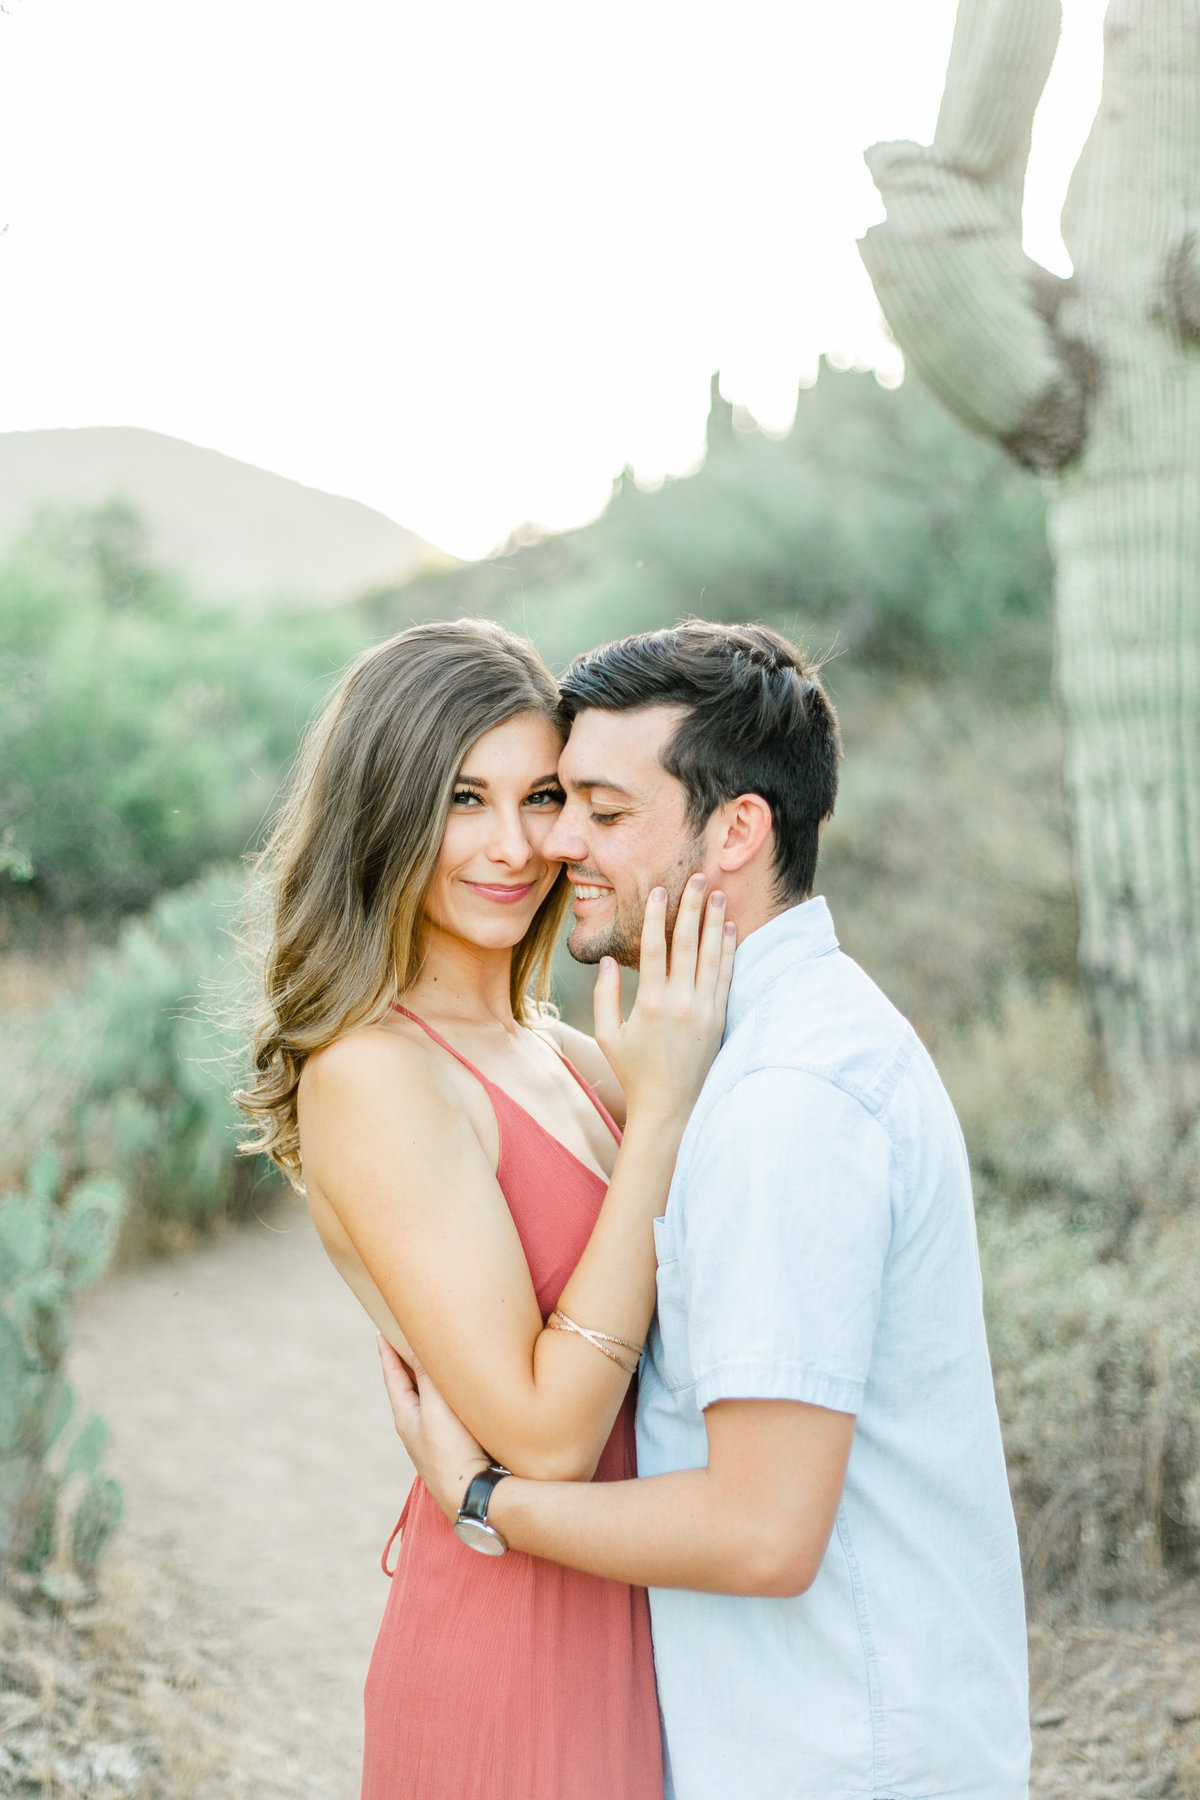 Karlie Colleen Photography - Arizona Desert Engagement - Brynne & Josh -121